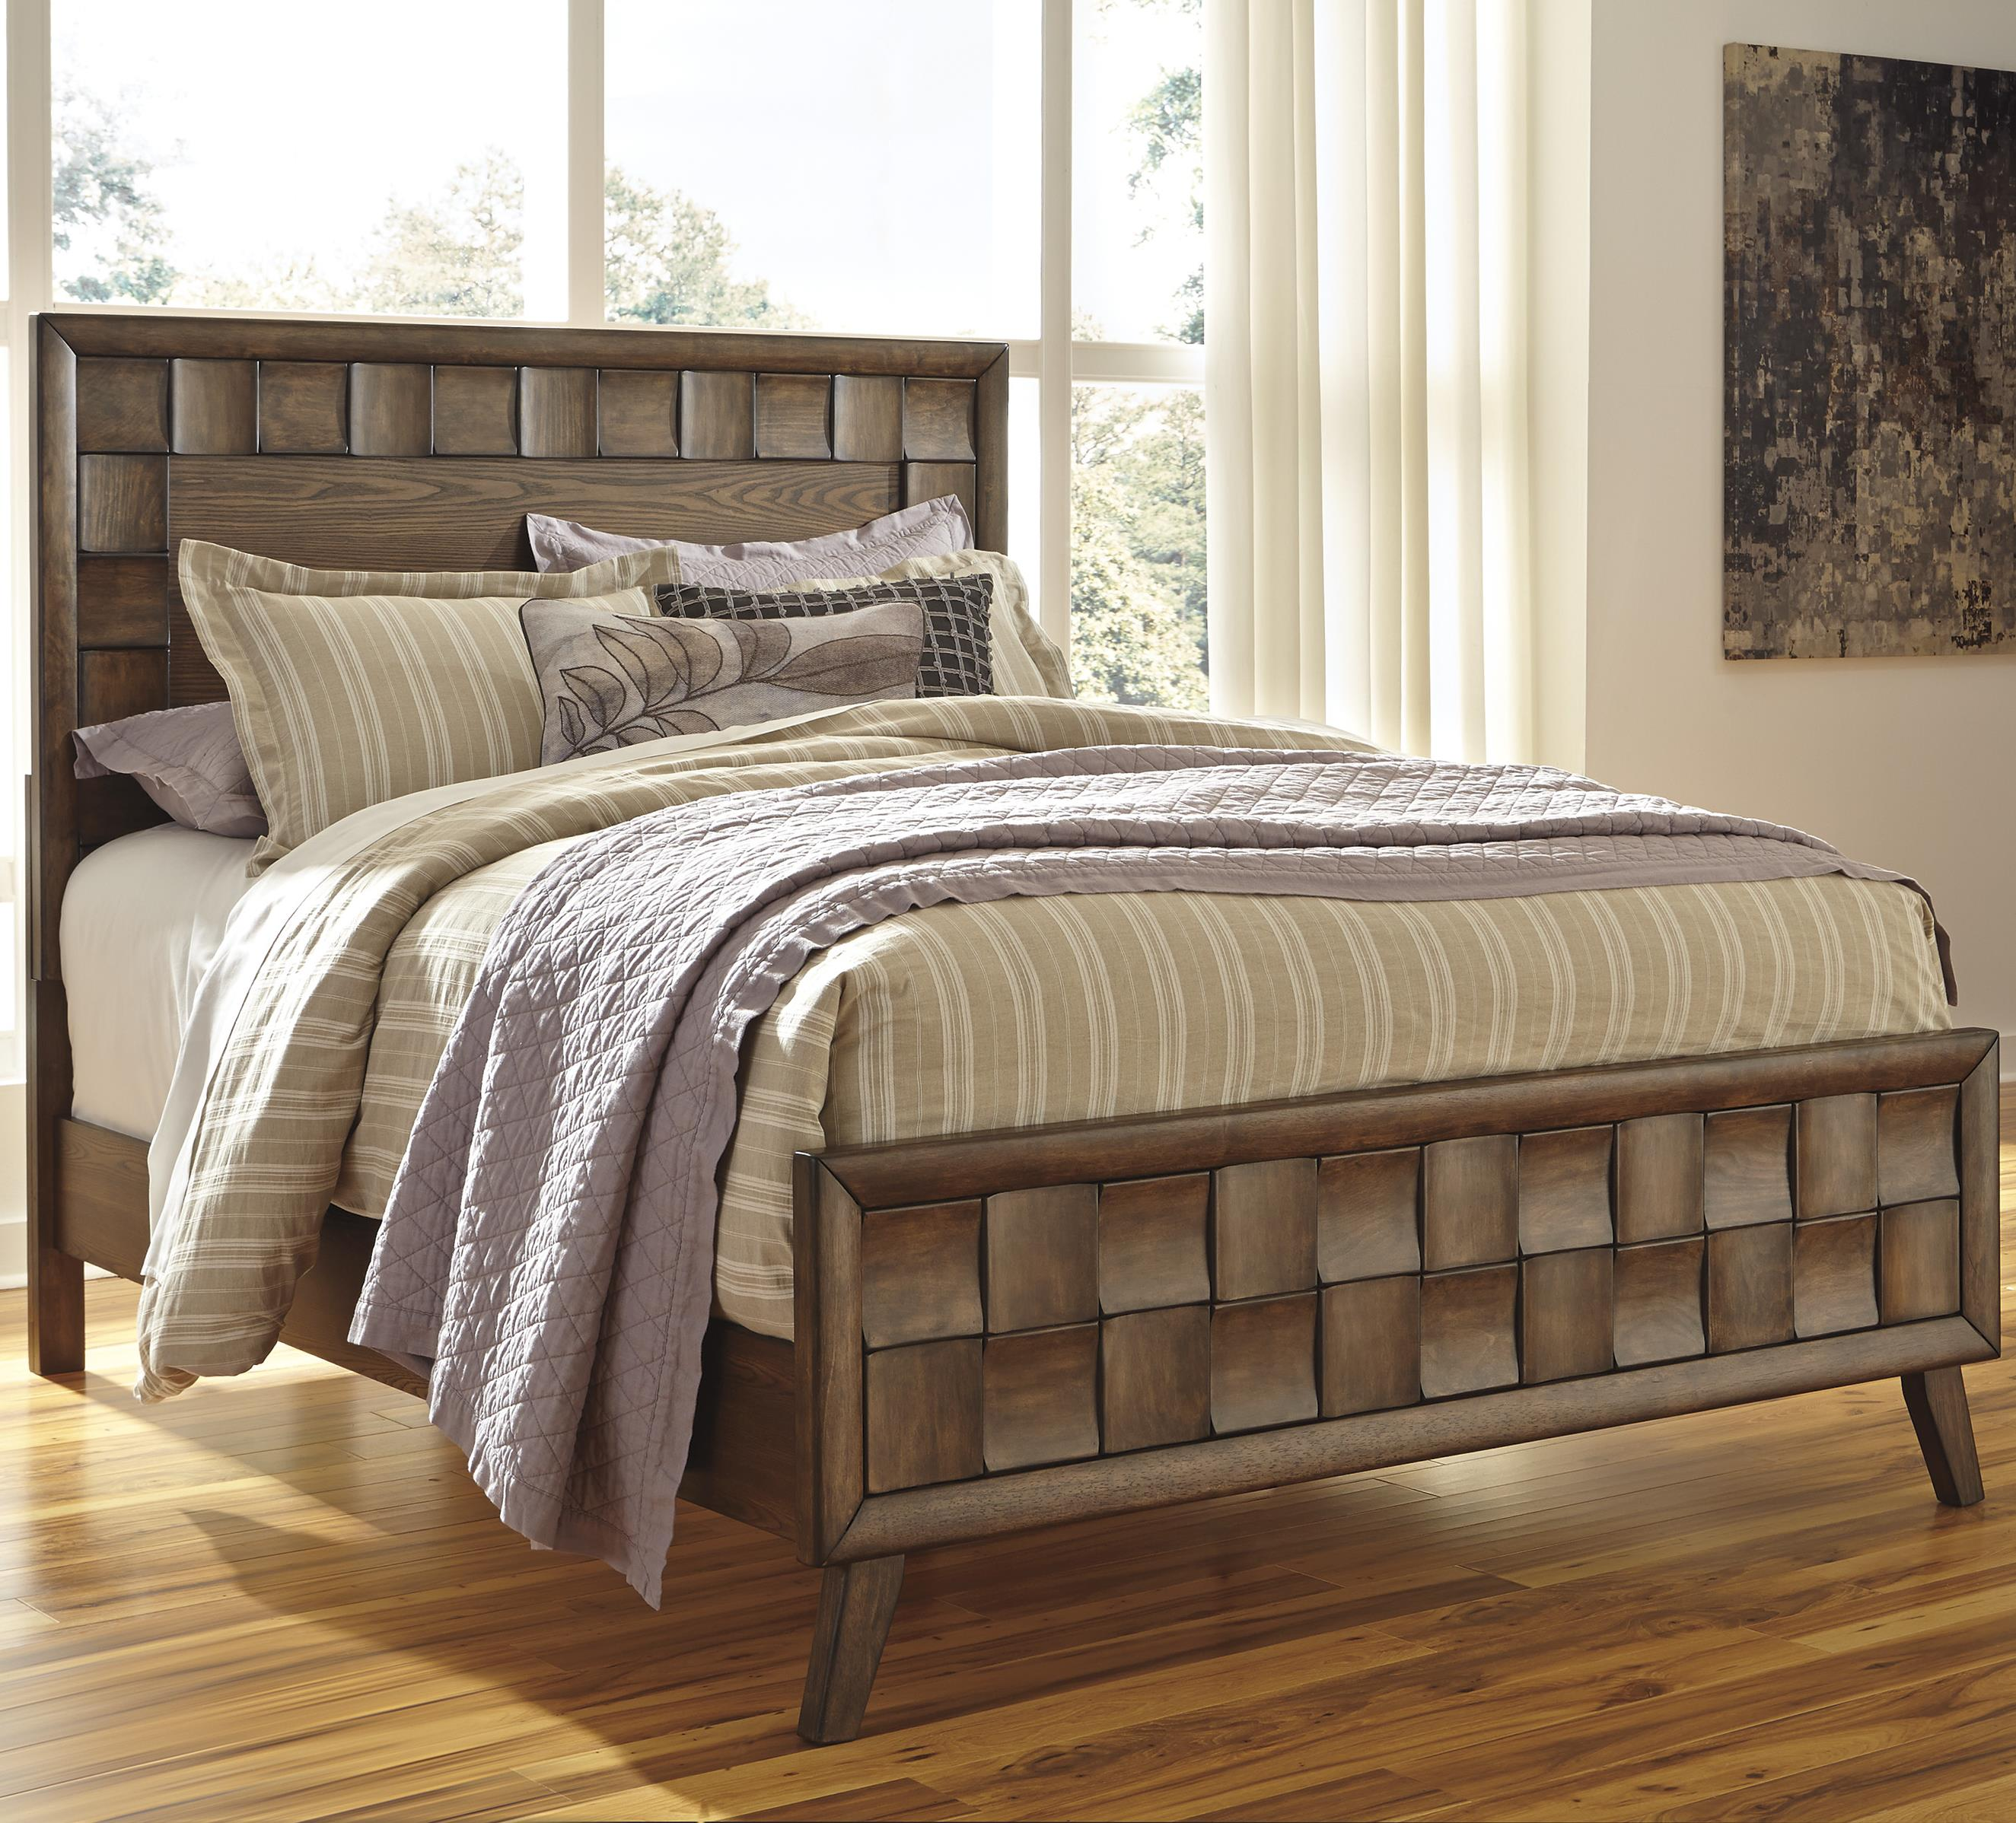 Signature Design by Ashley Debeaux Queen Wood Panel Bed - Item Number: B535-57+54+96